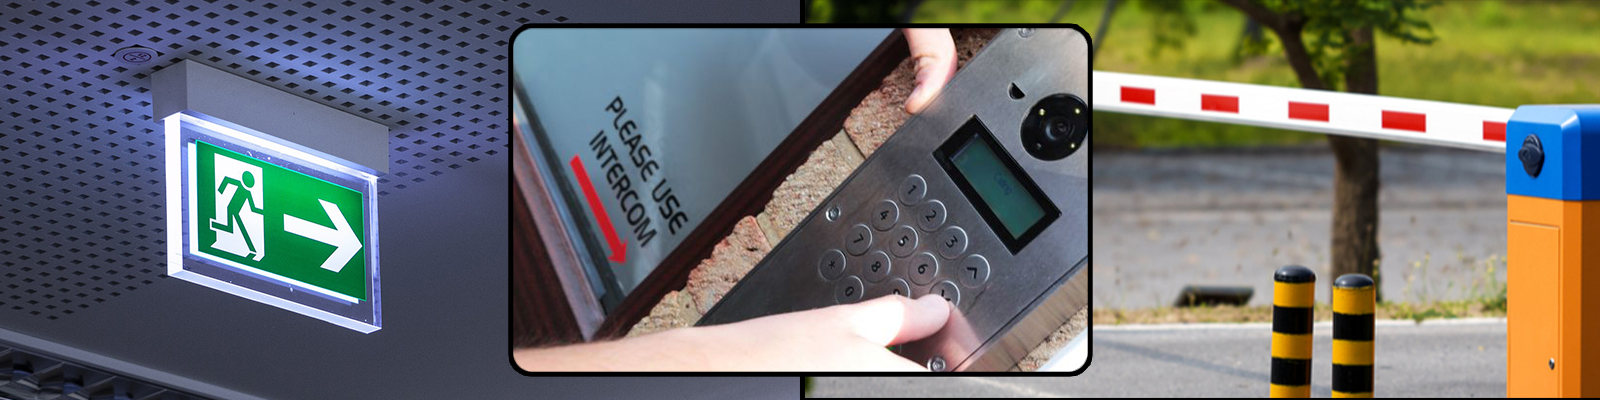 Access-control-system-service-providers-brentwood